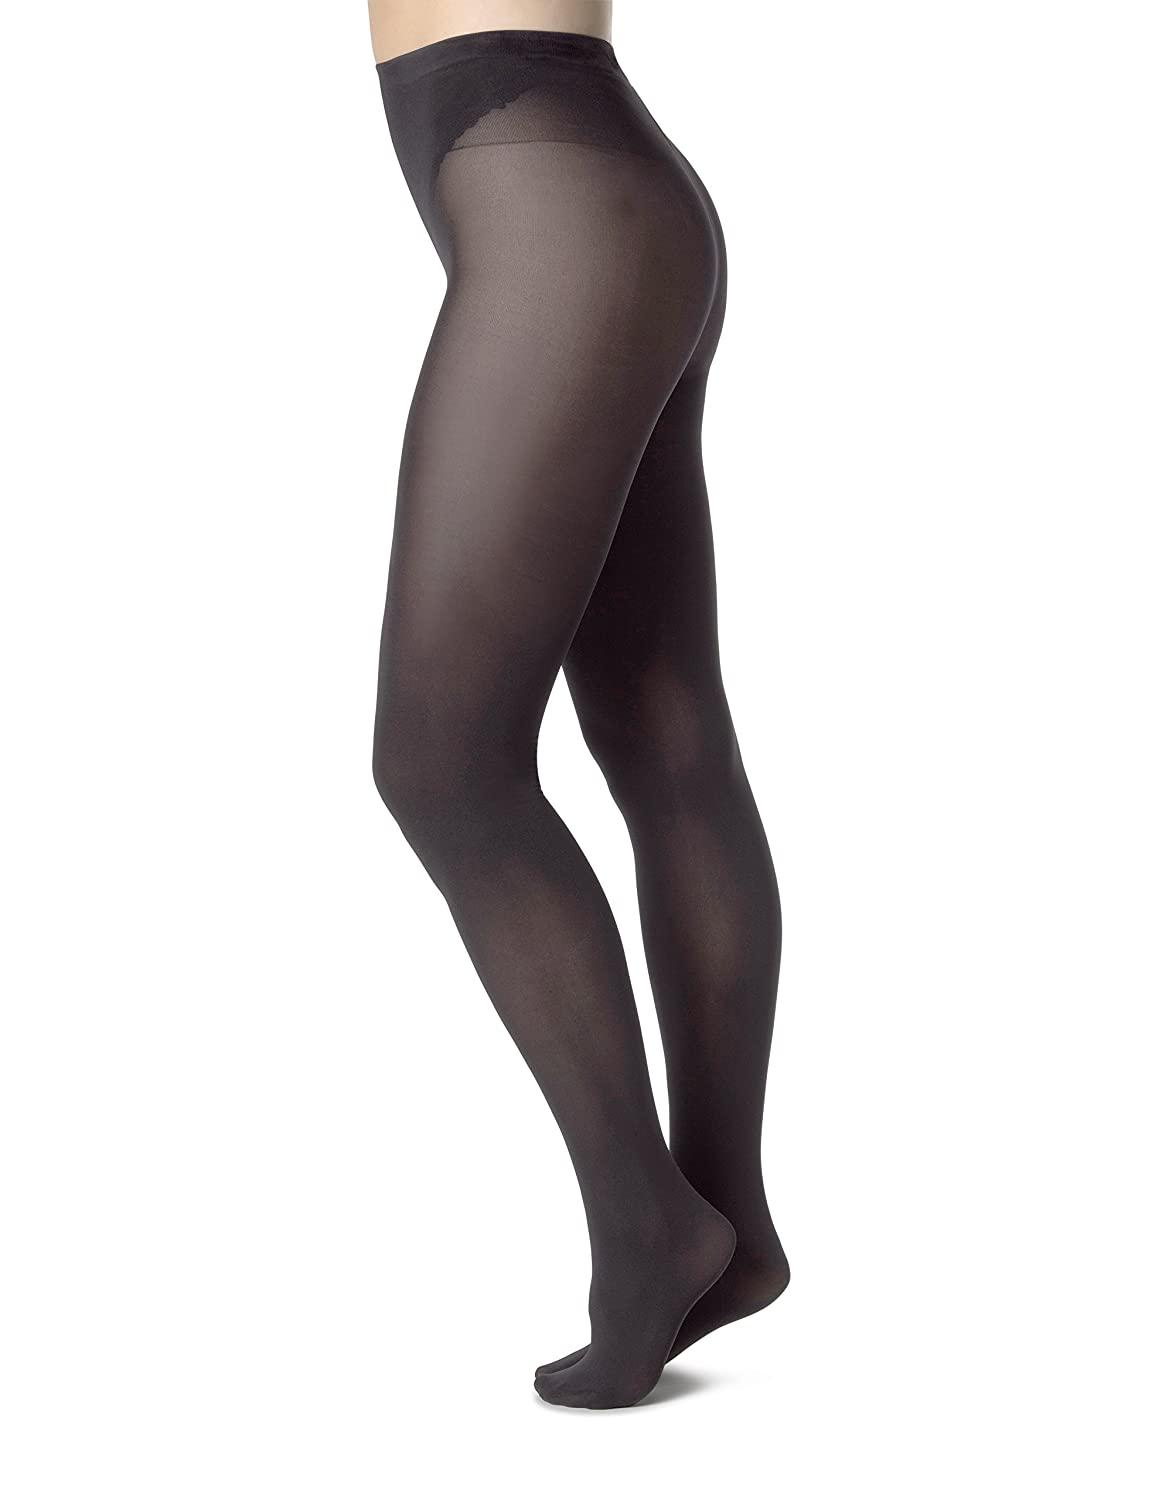 bb56f8e084e PERFECT SHEER PANTYHOSE - Feel covered with a little skin with sheer  coverage stockings that can easily transition from the office suit to an  evening out ...